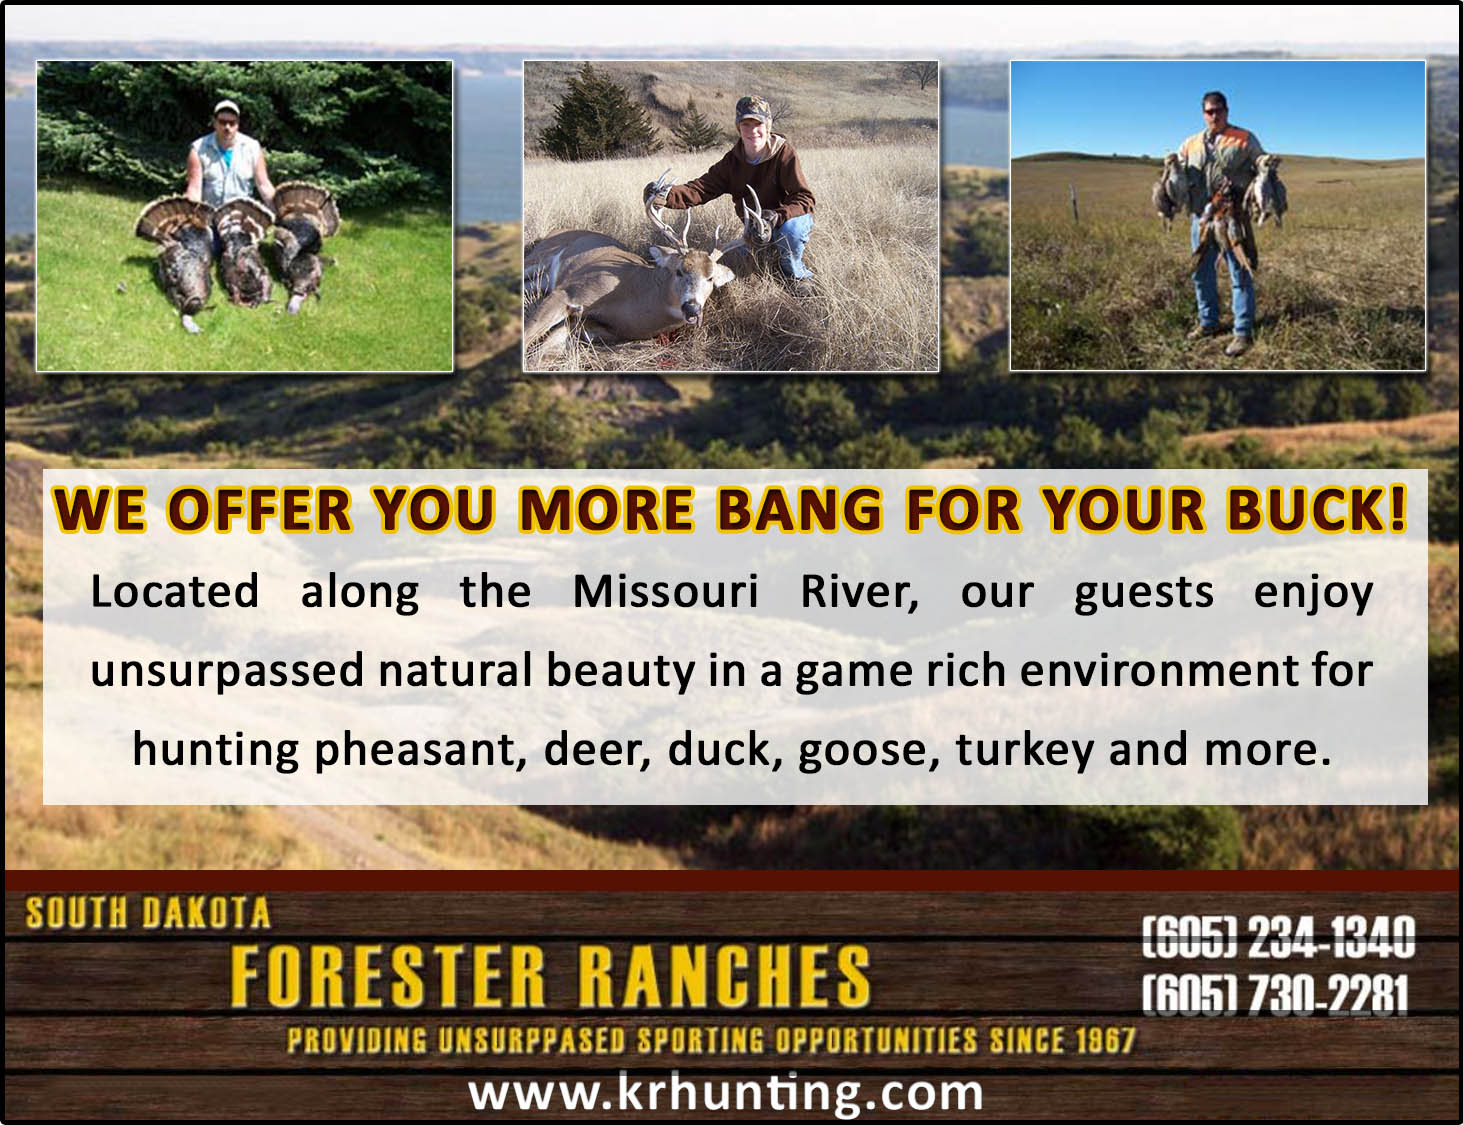 Forester Ranches